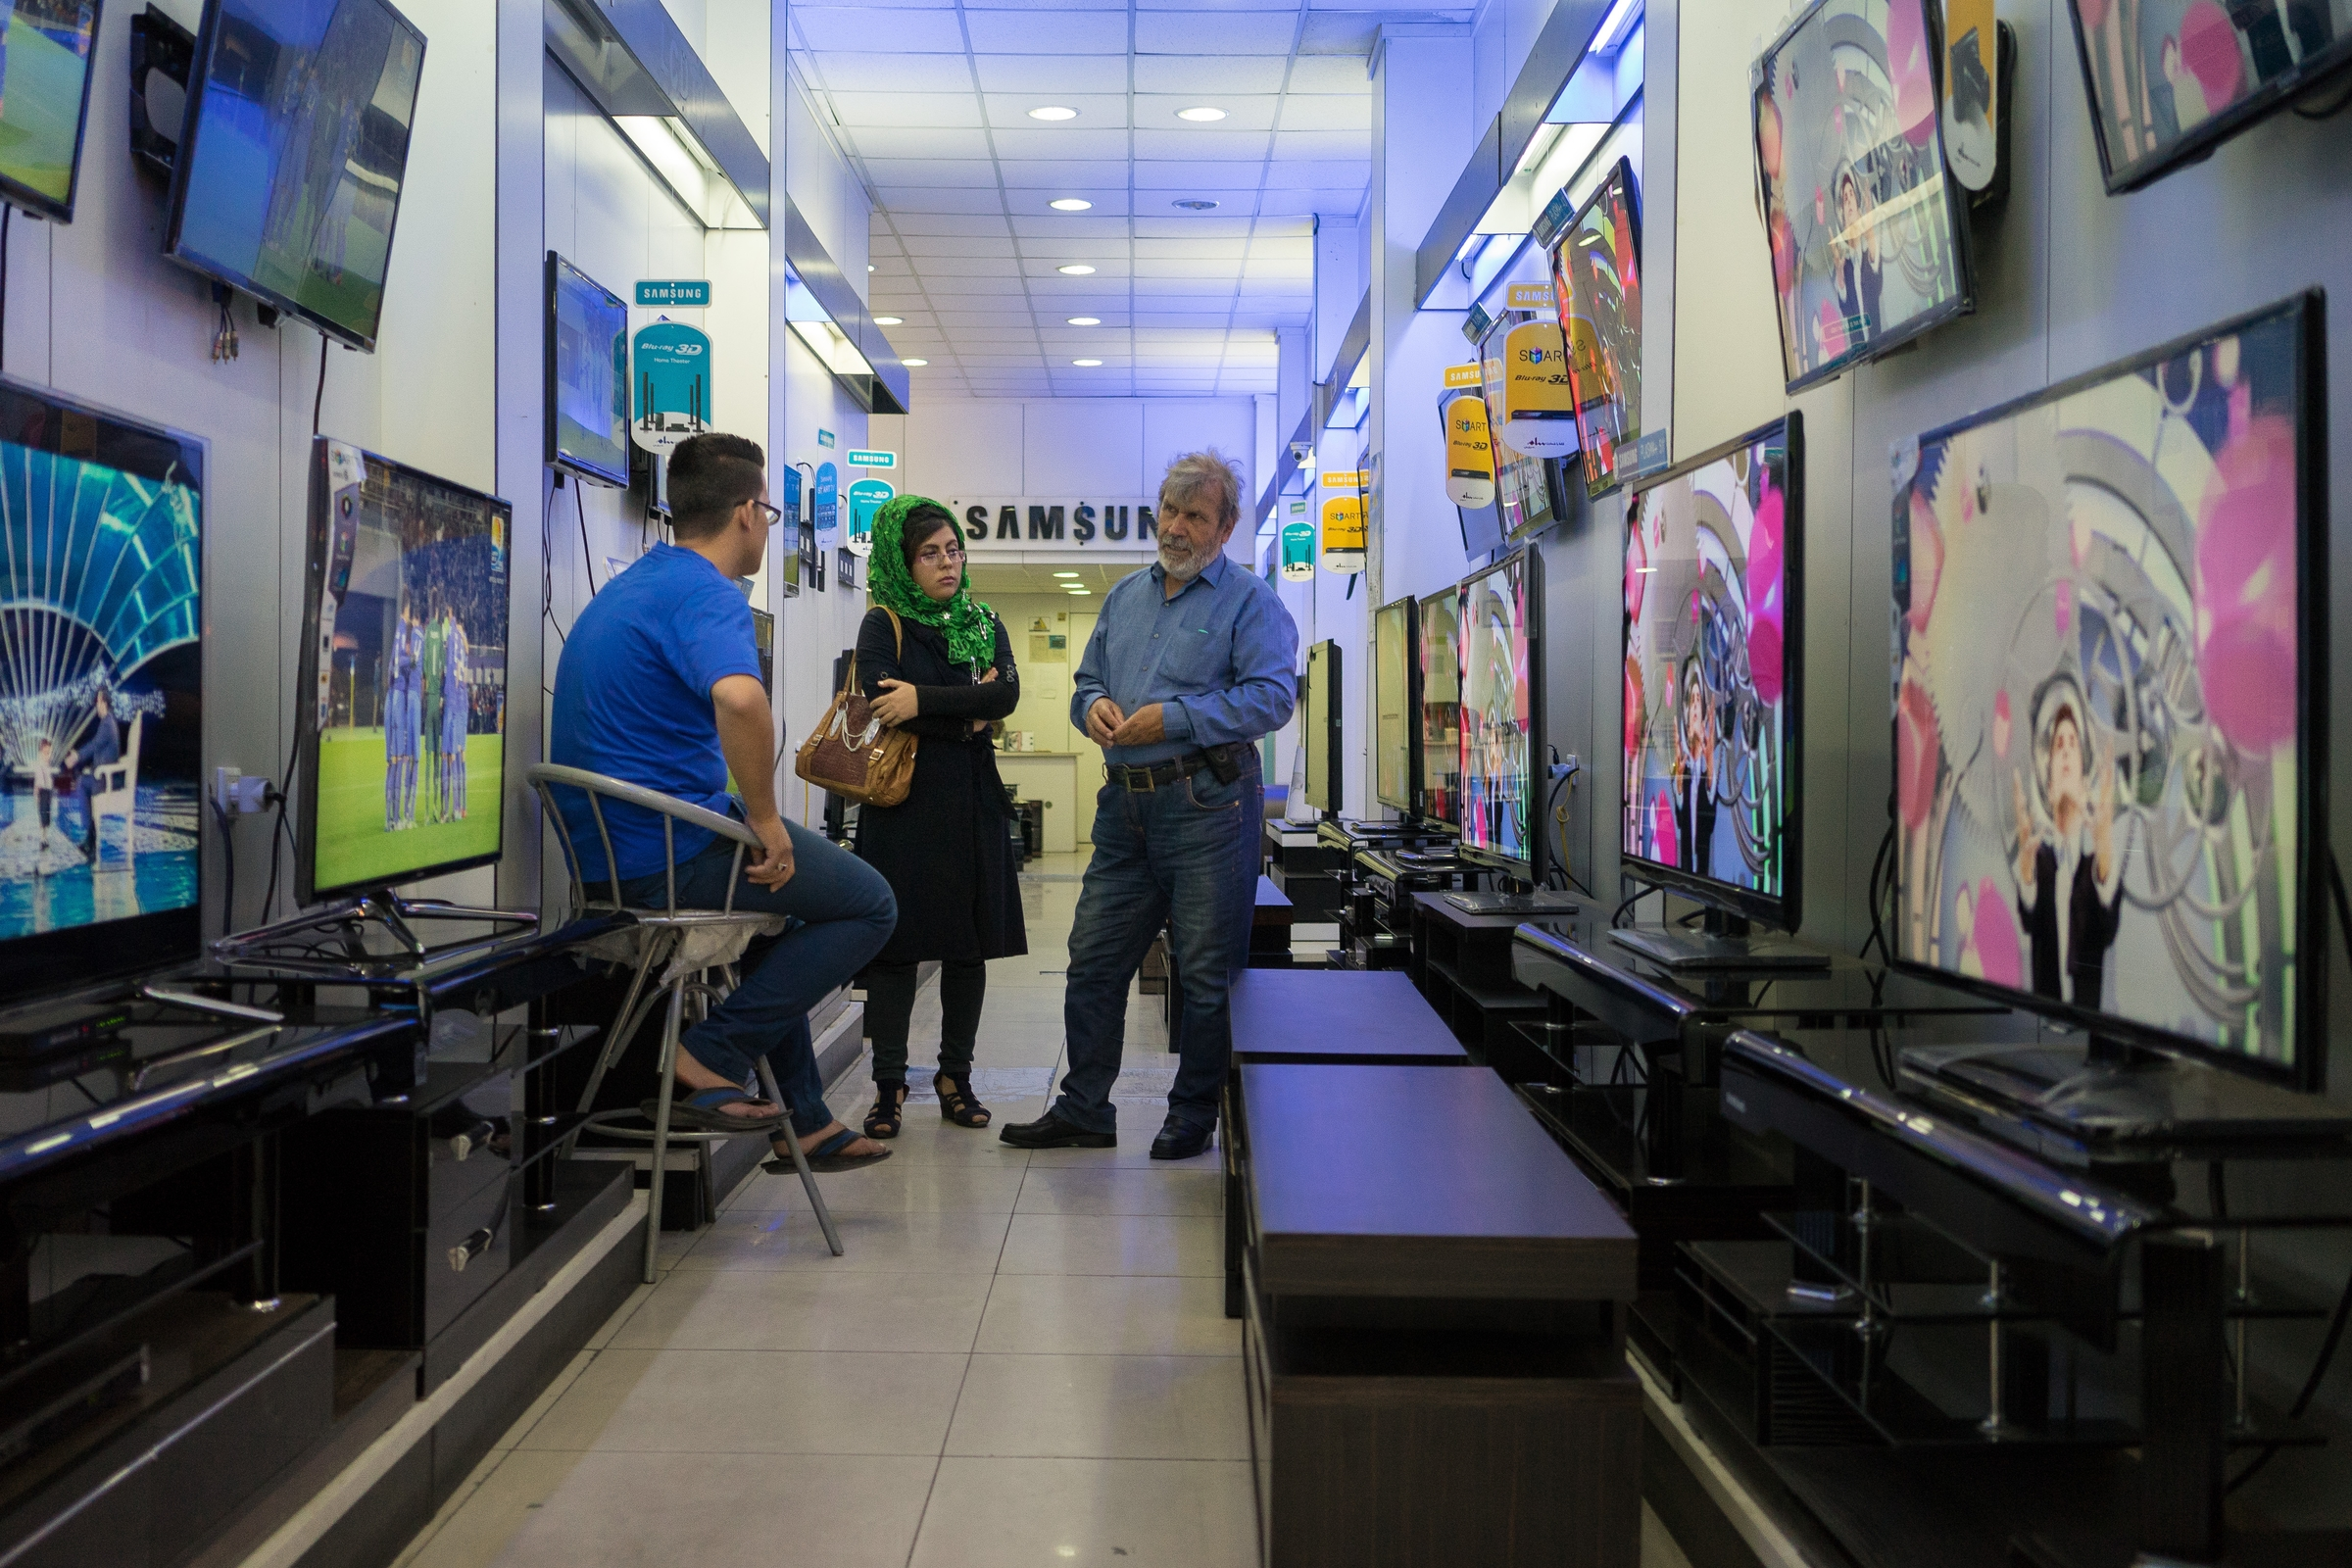 Samsung has emerged as the clear leader in Iran's consumer electronics market. It has overtaken Nokia in the mobile phone market and Panasonic in the television market following an aggressive push to bring a branded store experience to Iran.